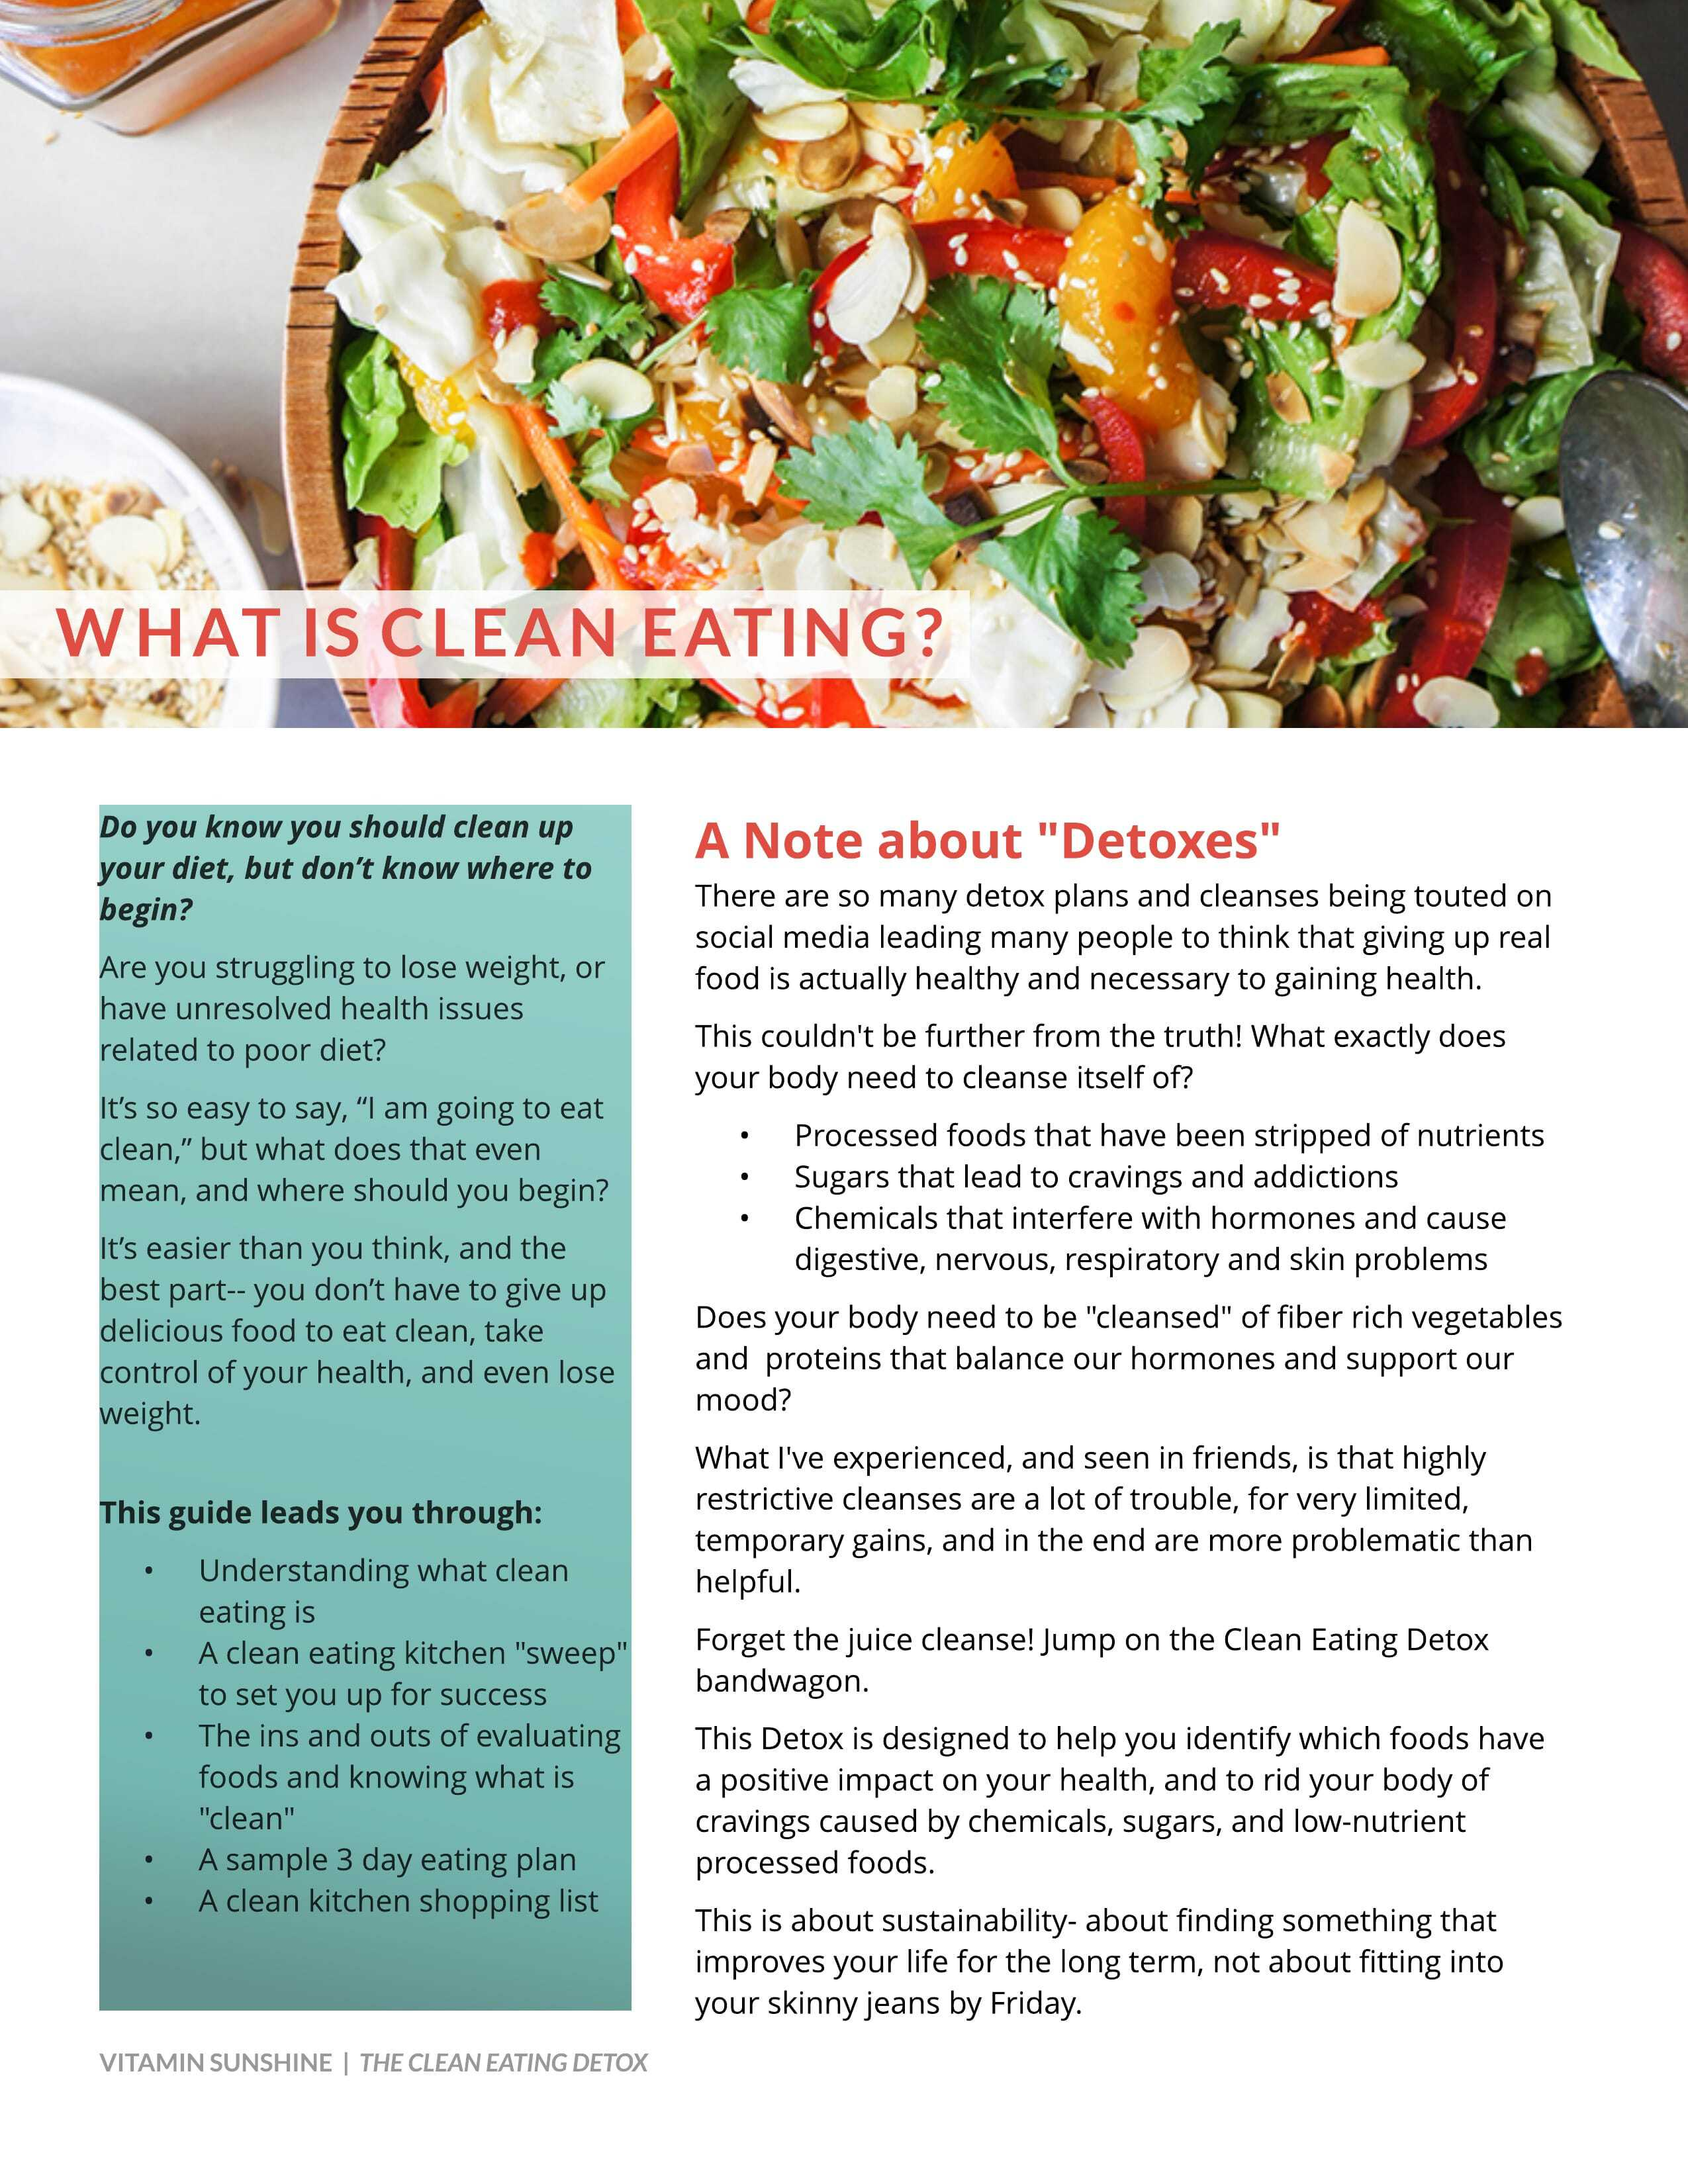 Food Additives to Avoid + A Clean Eating Kitchen Sweep - Sunkissed ...